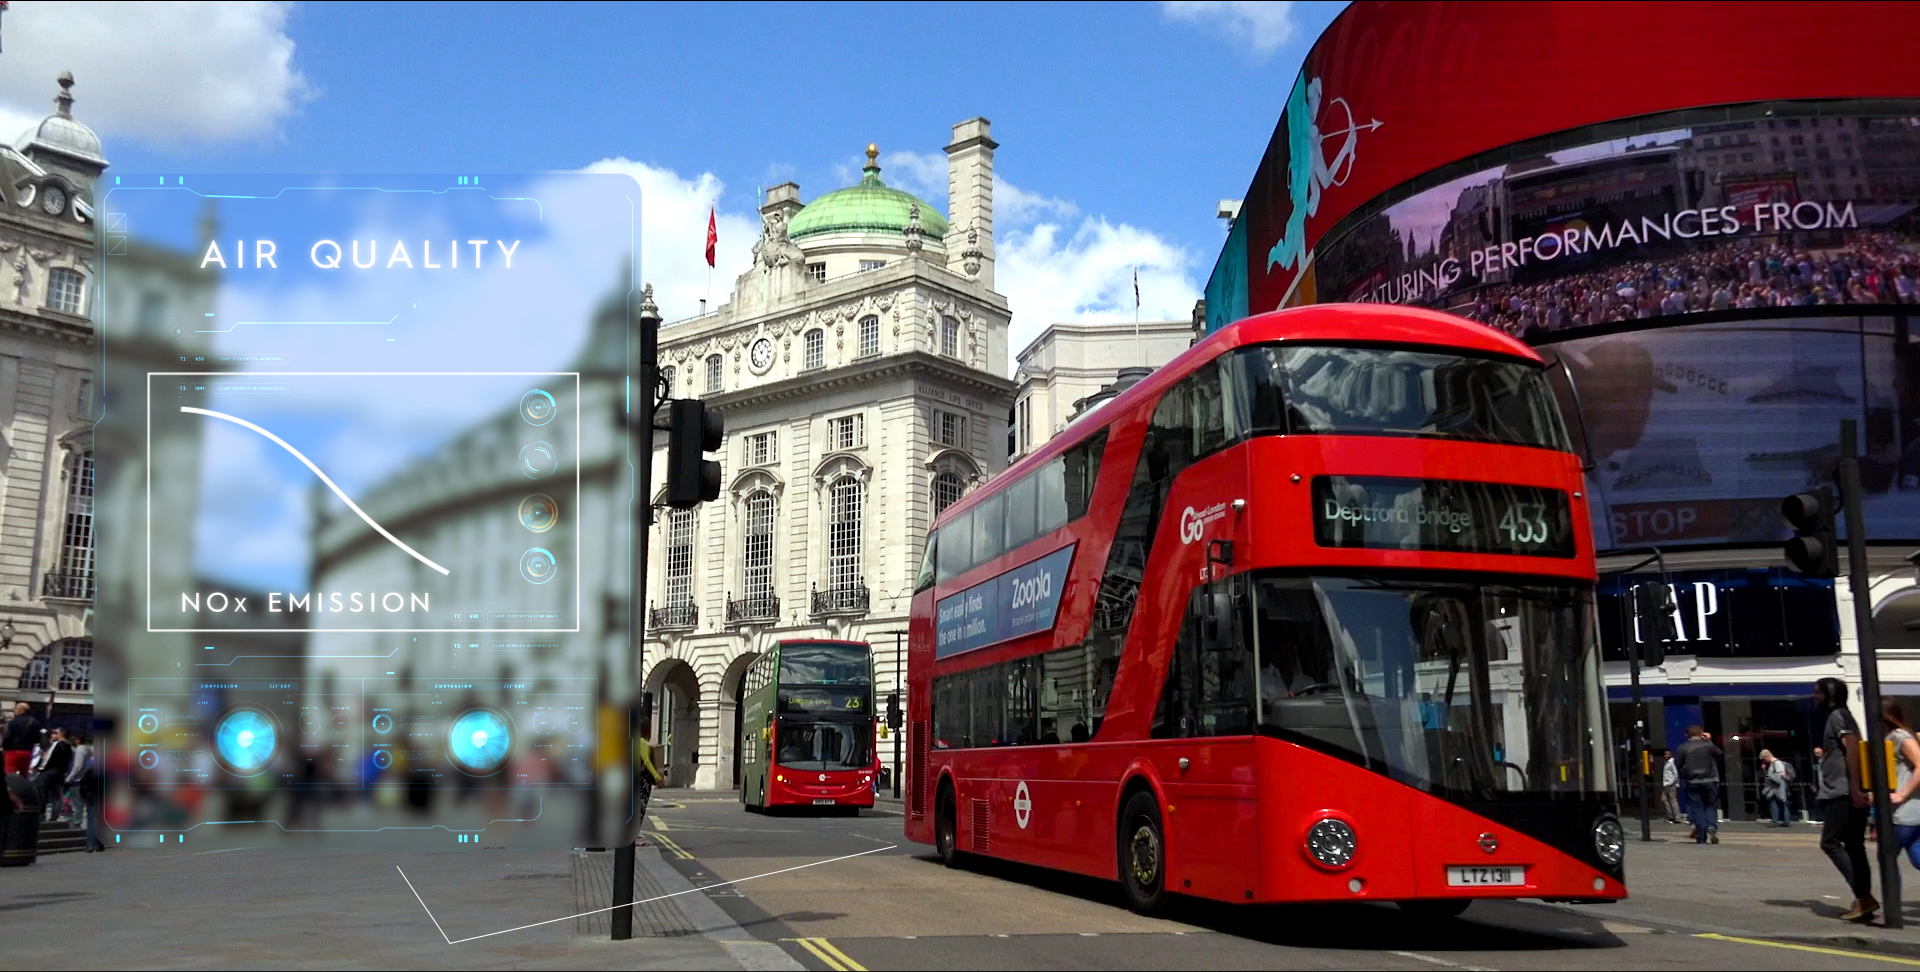 Double bus Londres - Amminex ASDS